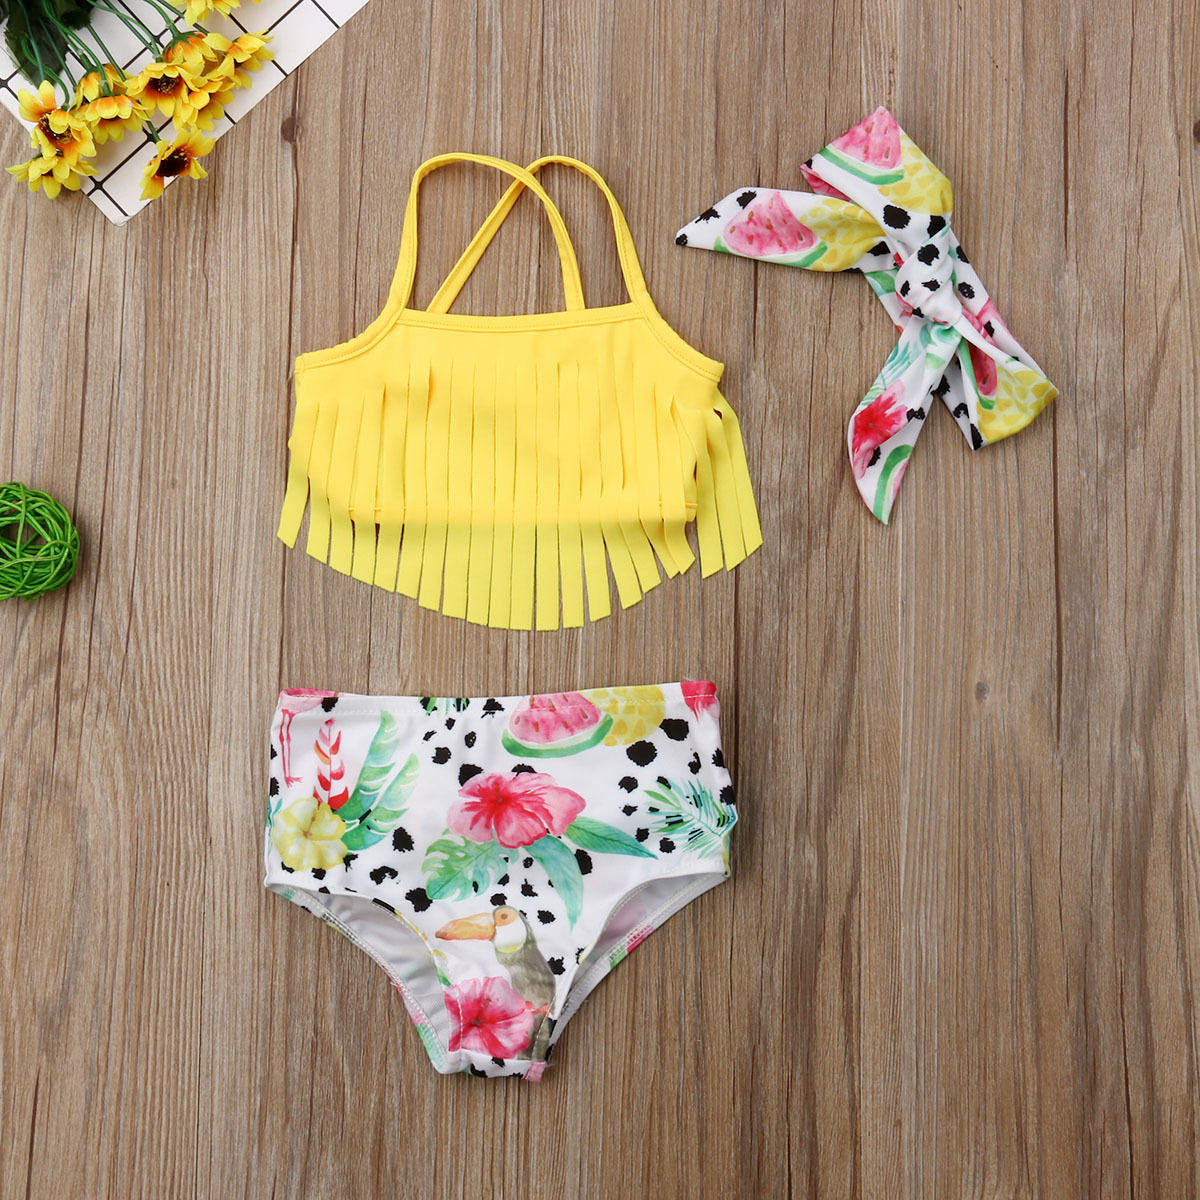 Newborn Infant Baby Girl Swimwear Suit Bird Floral Top Pant Outfit Beach Tankini image 2